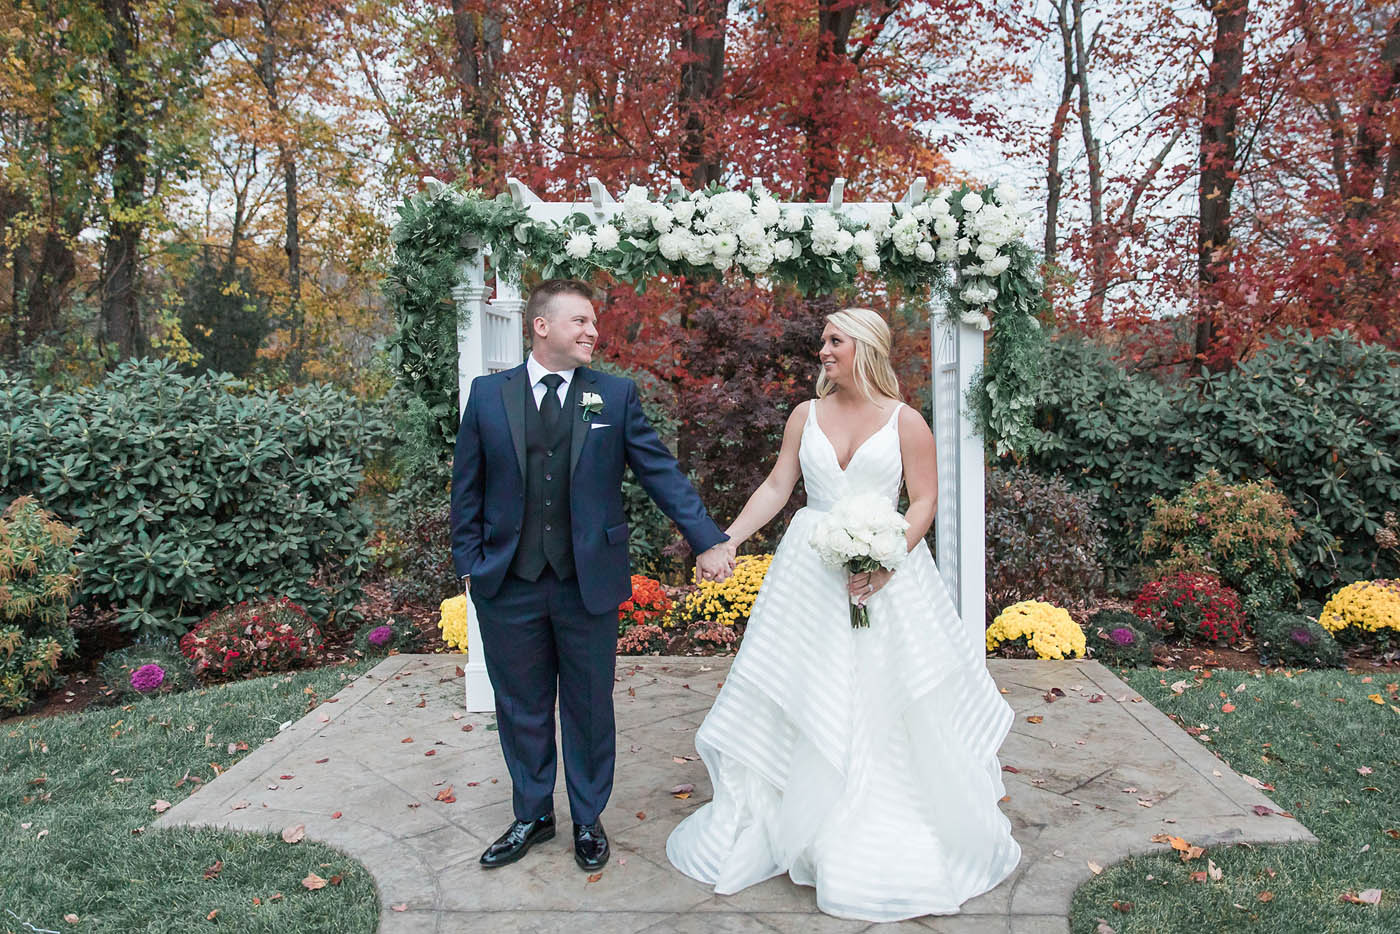 outdoor fall wedding ceremony at Avenir Walpole MA